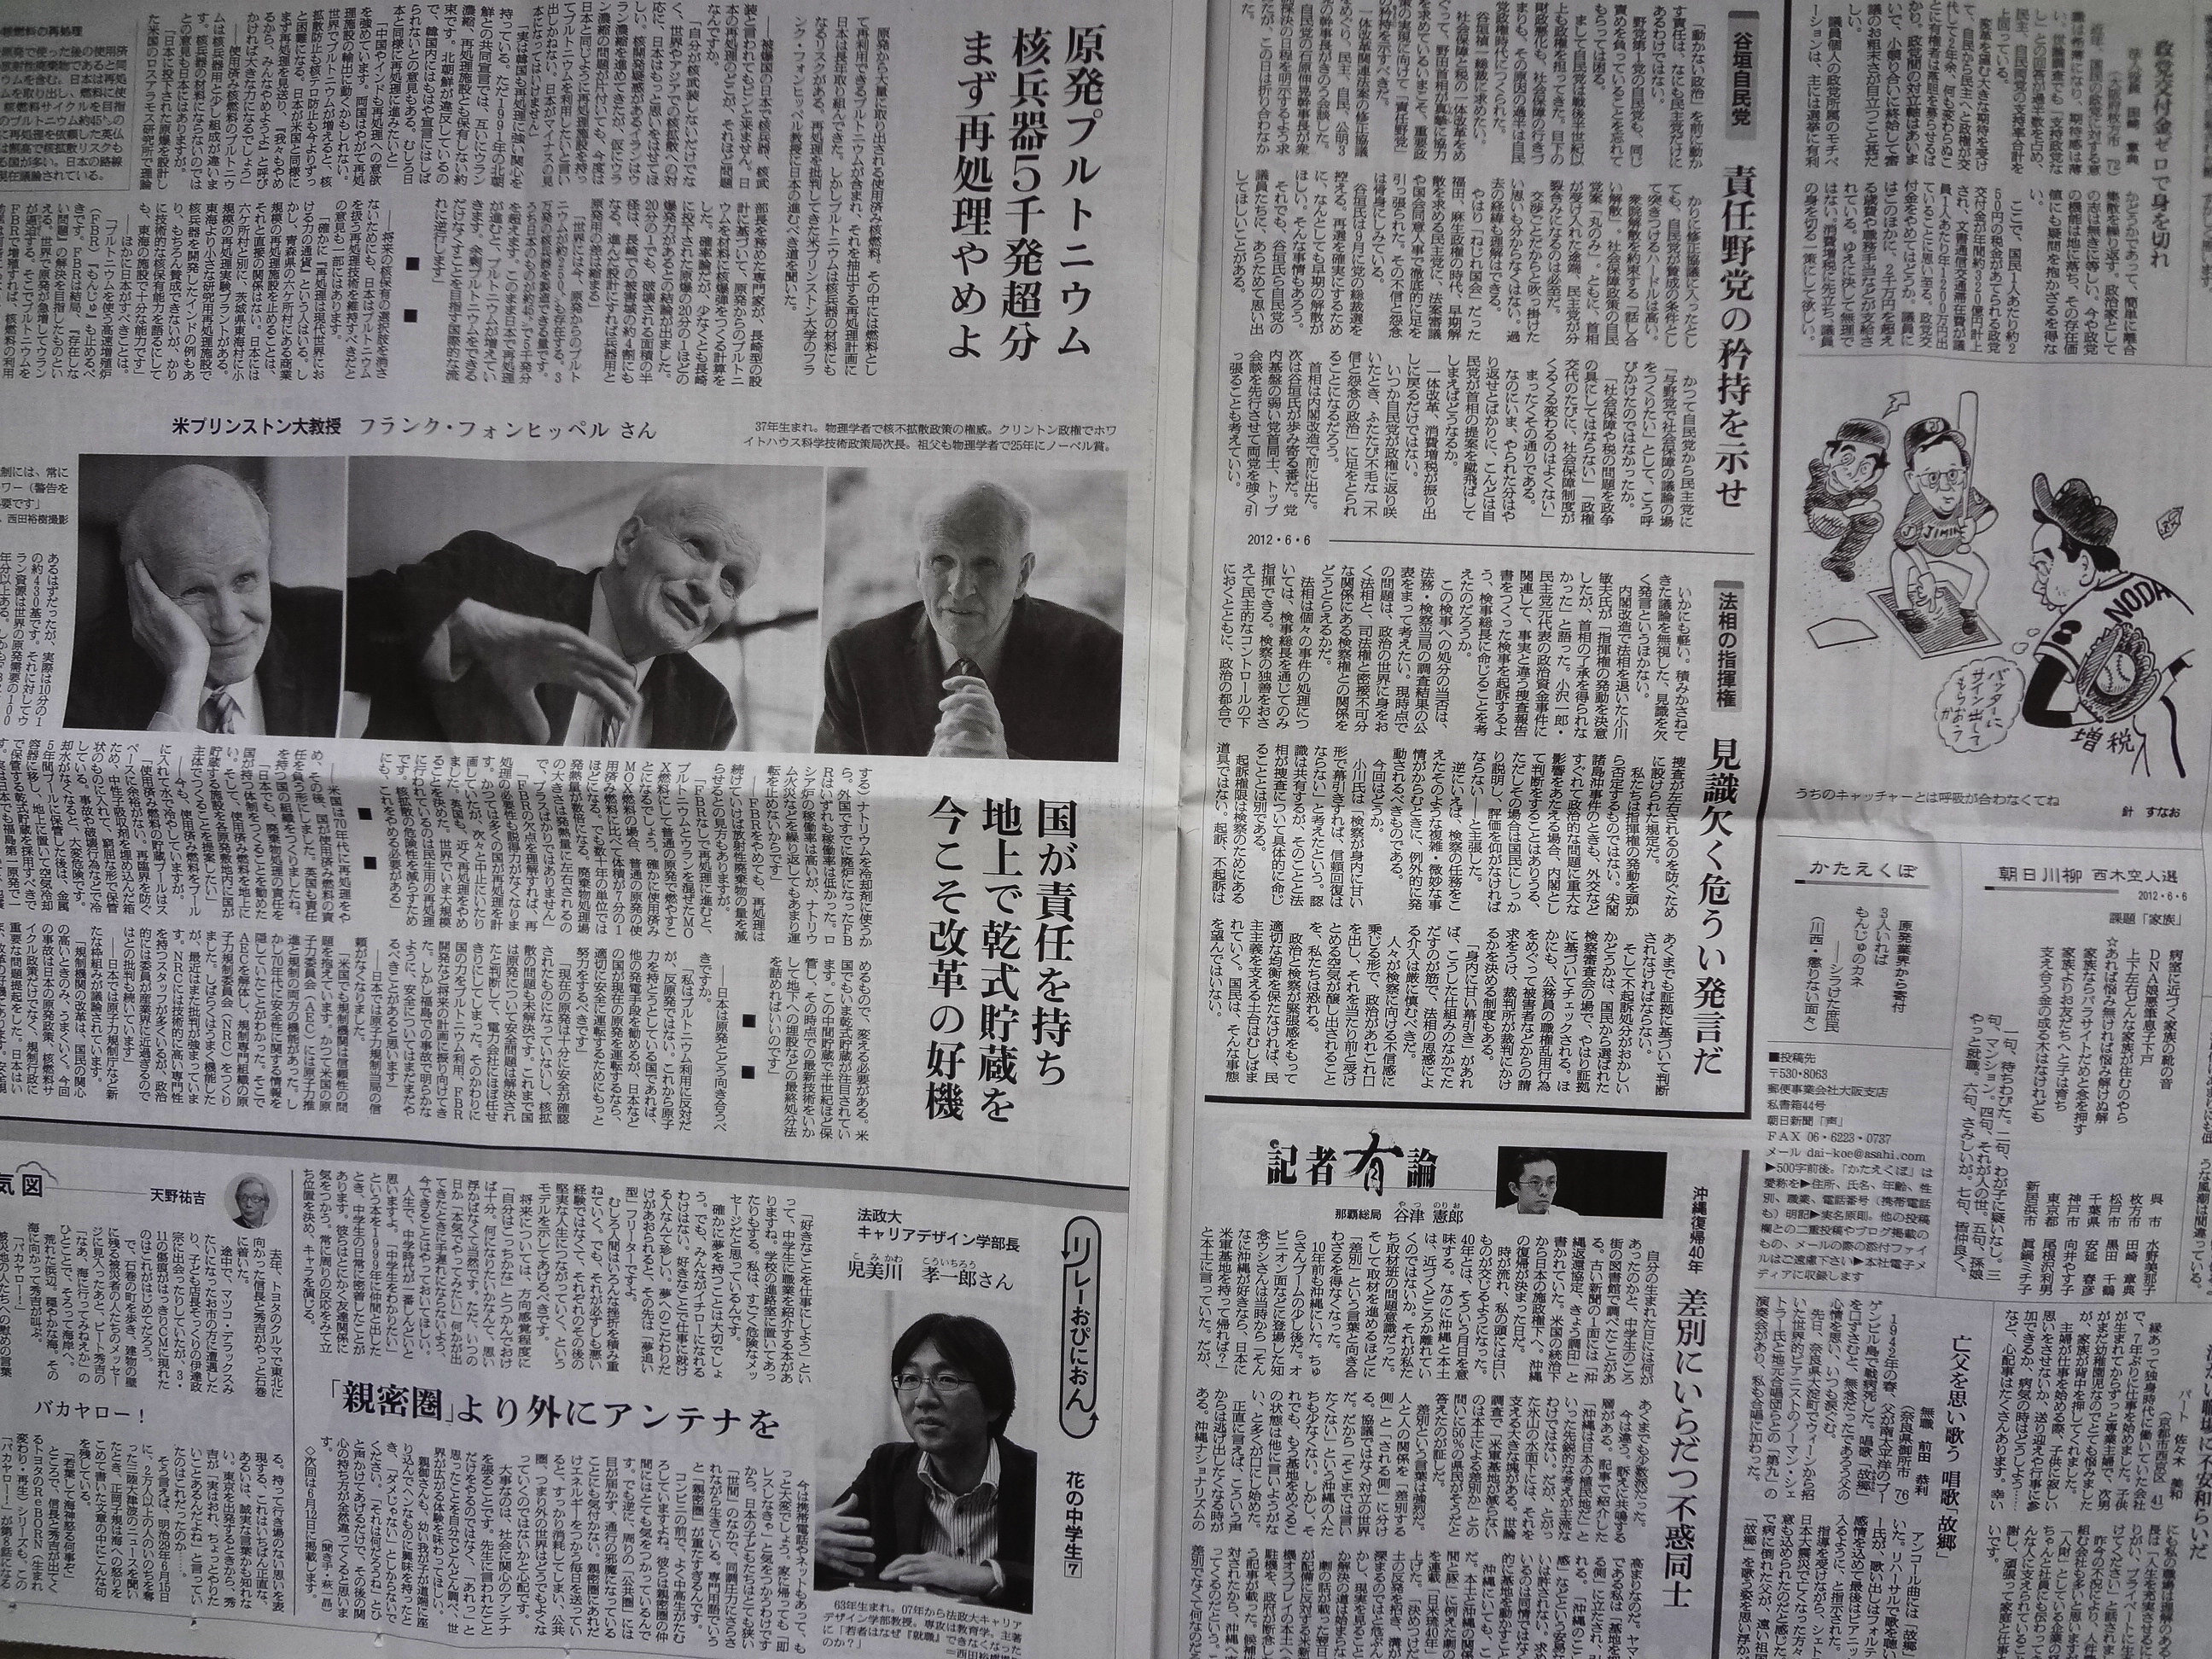 20120605-newspaper-5m-full.jpg